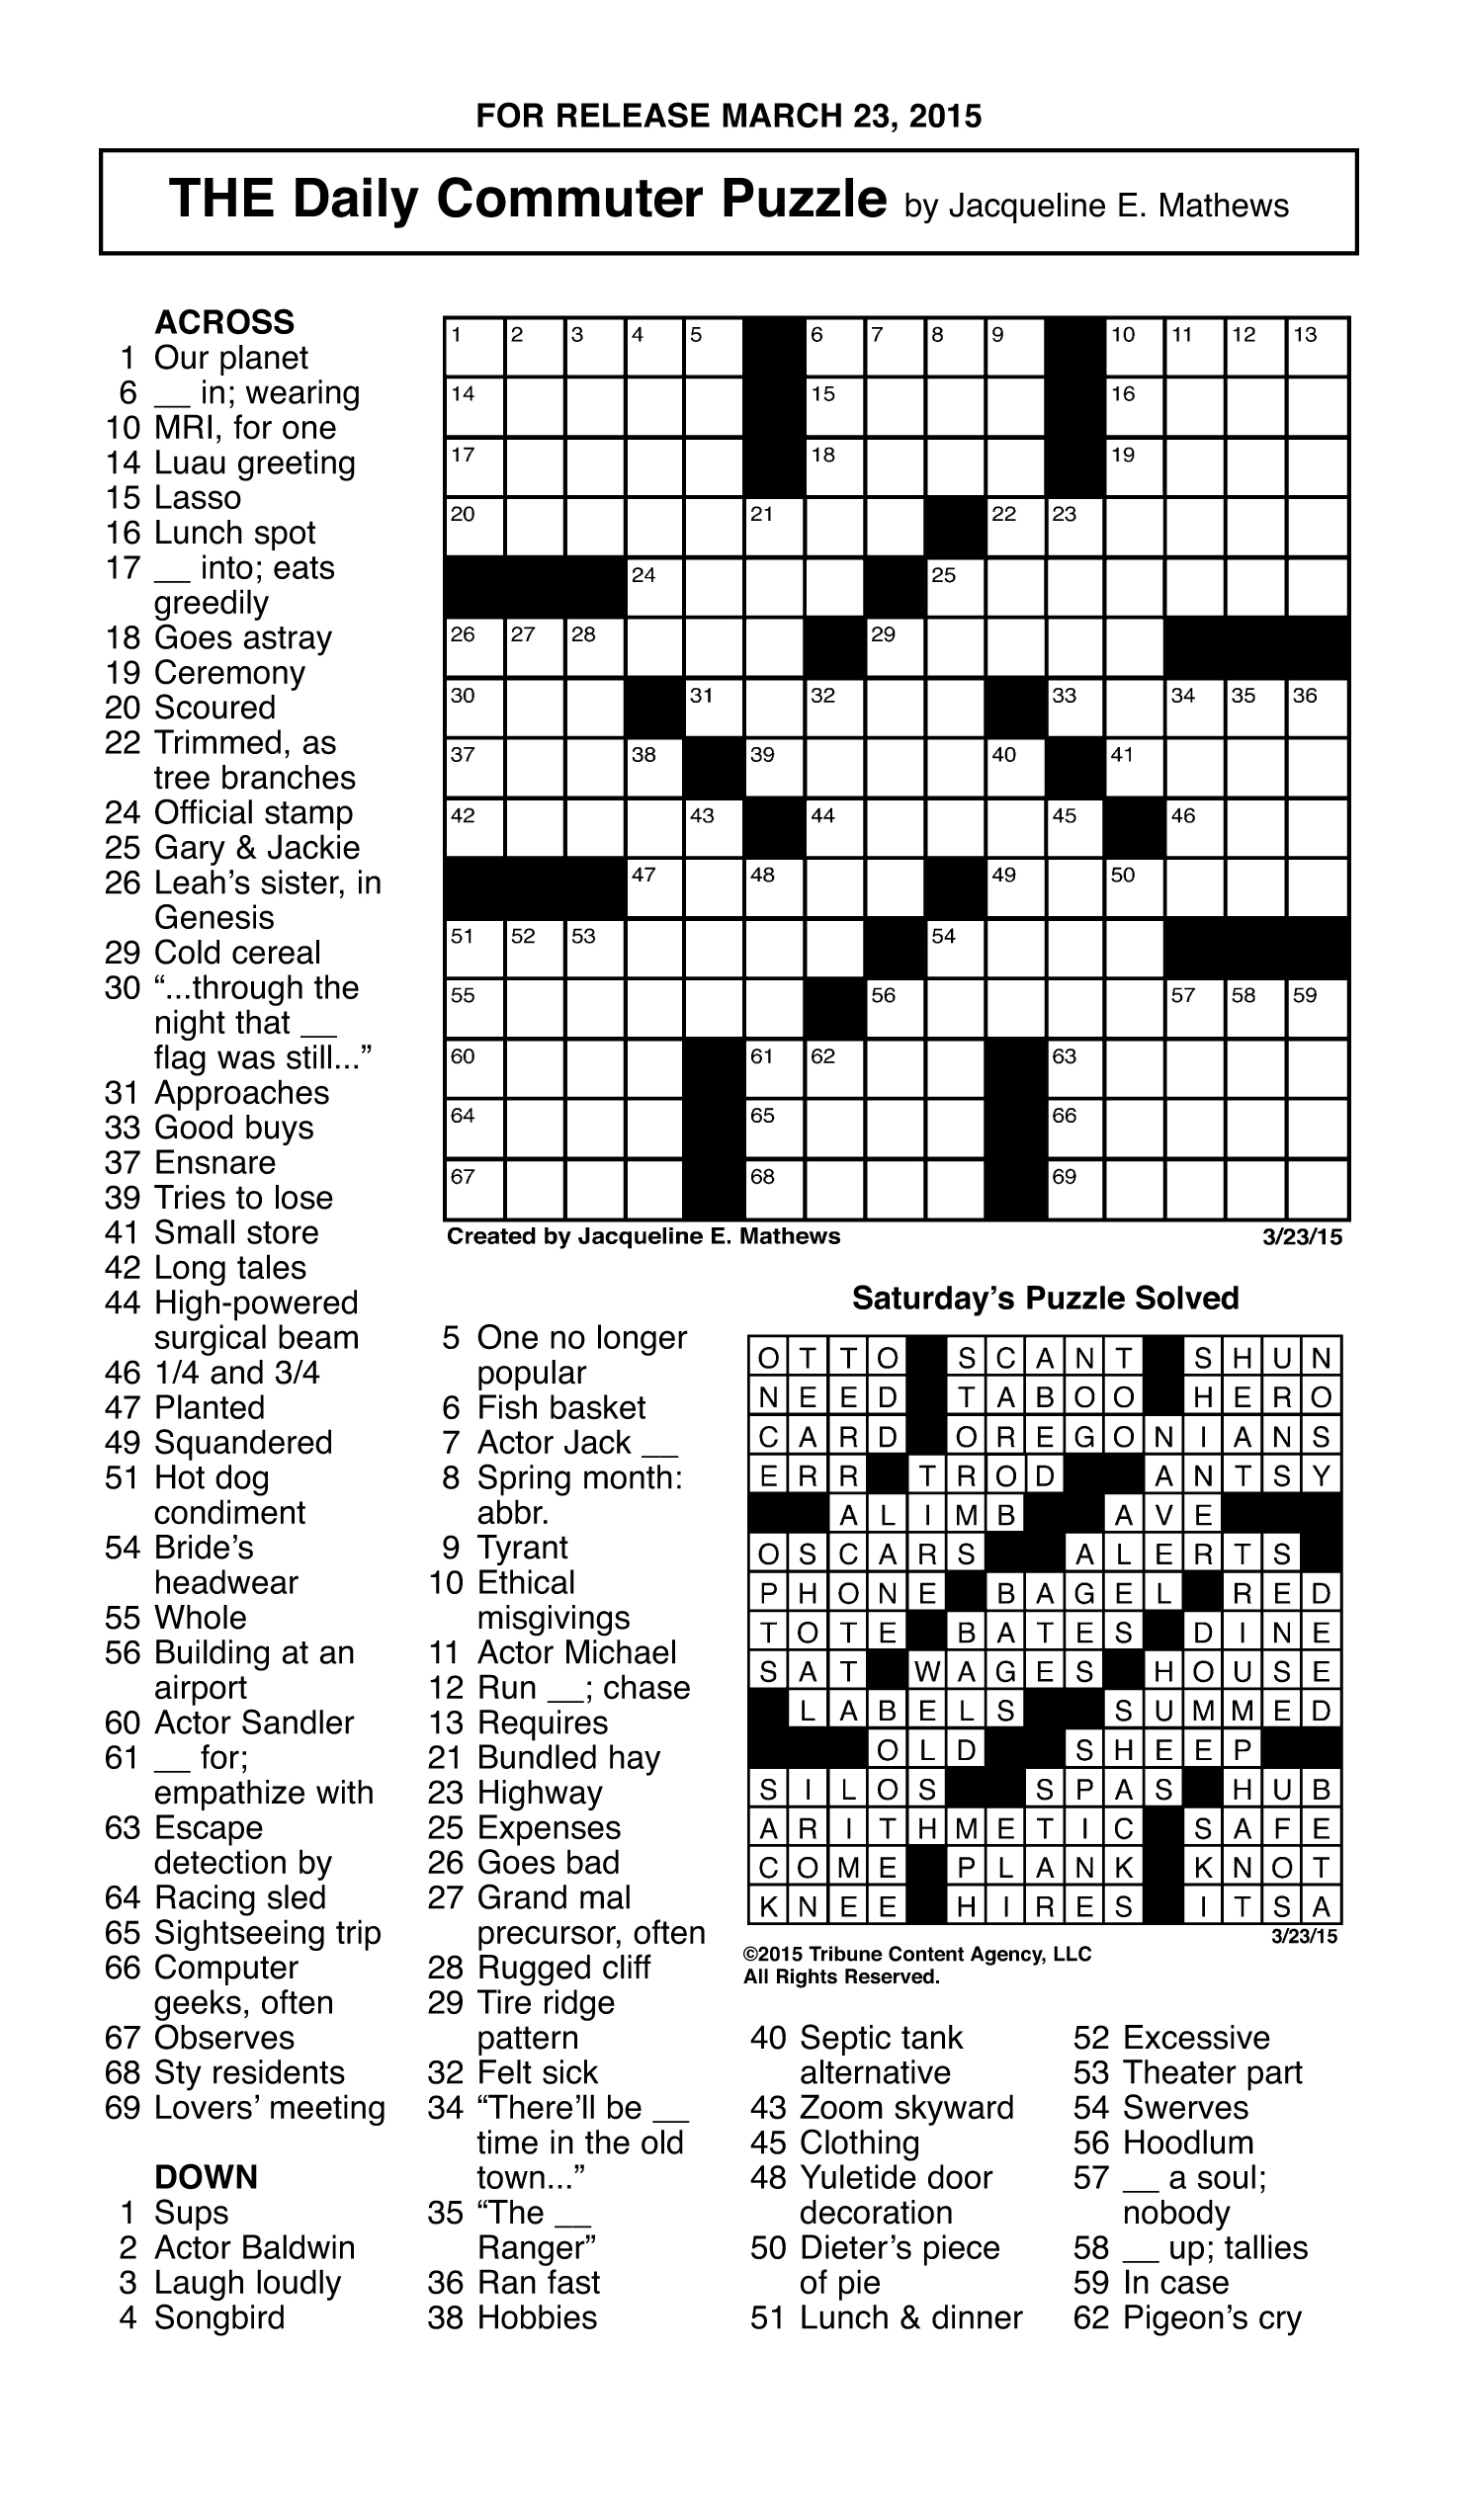 Sample Of The Daily Commuter Puzzle | Tribune Content Agency